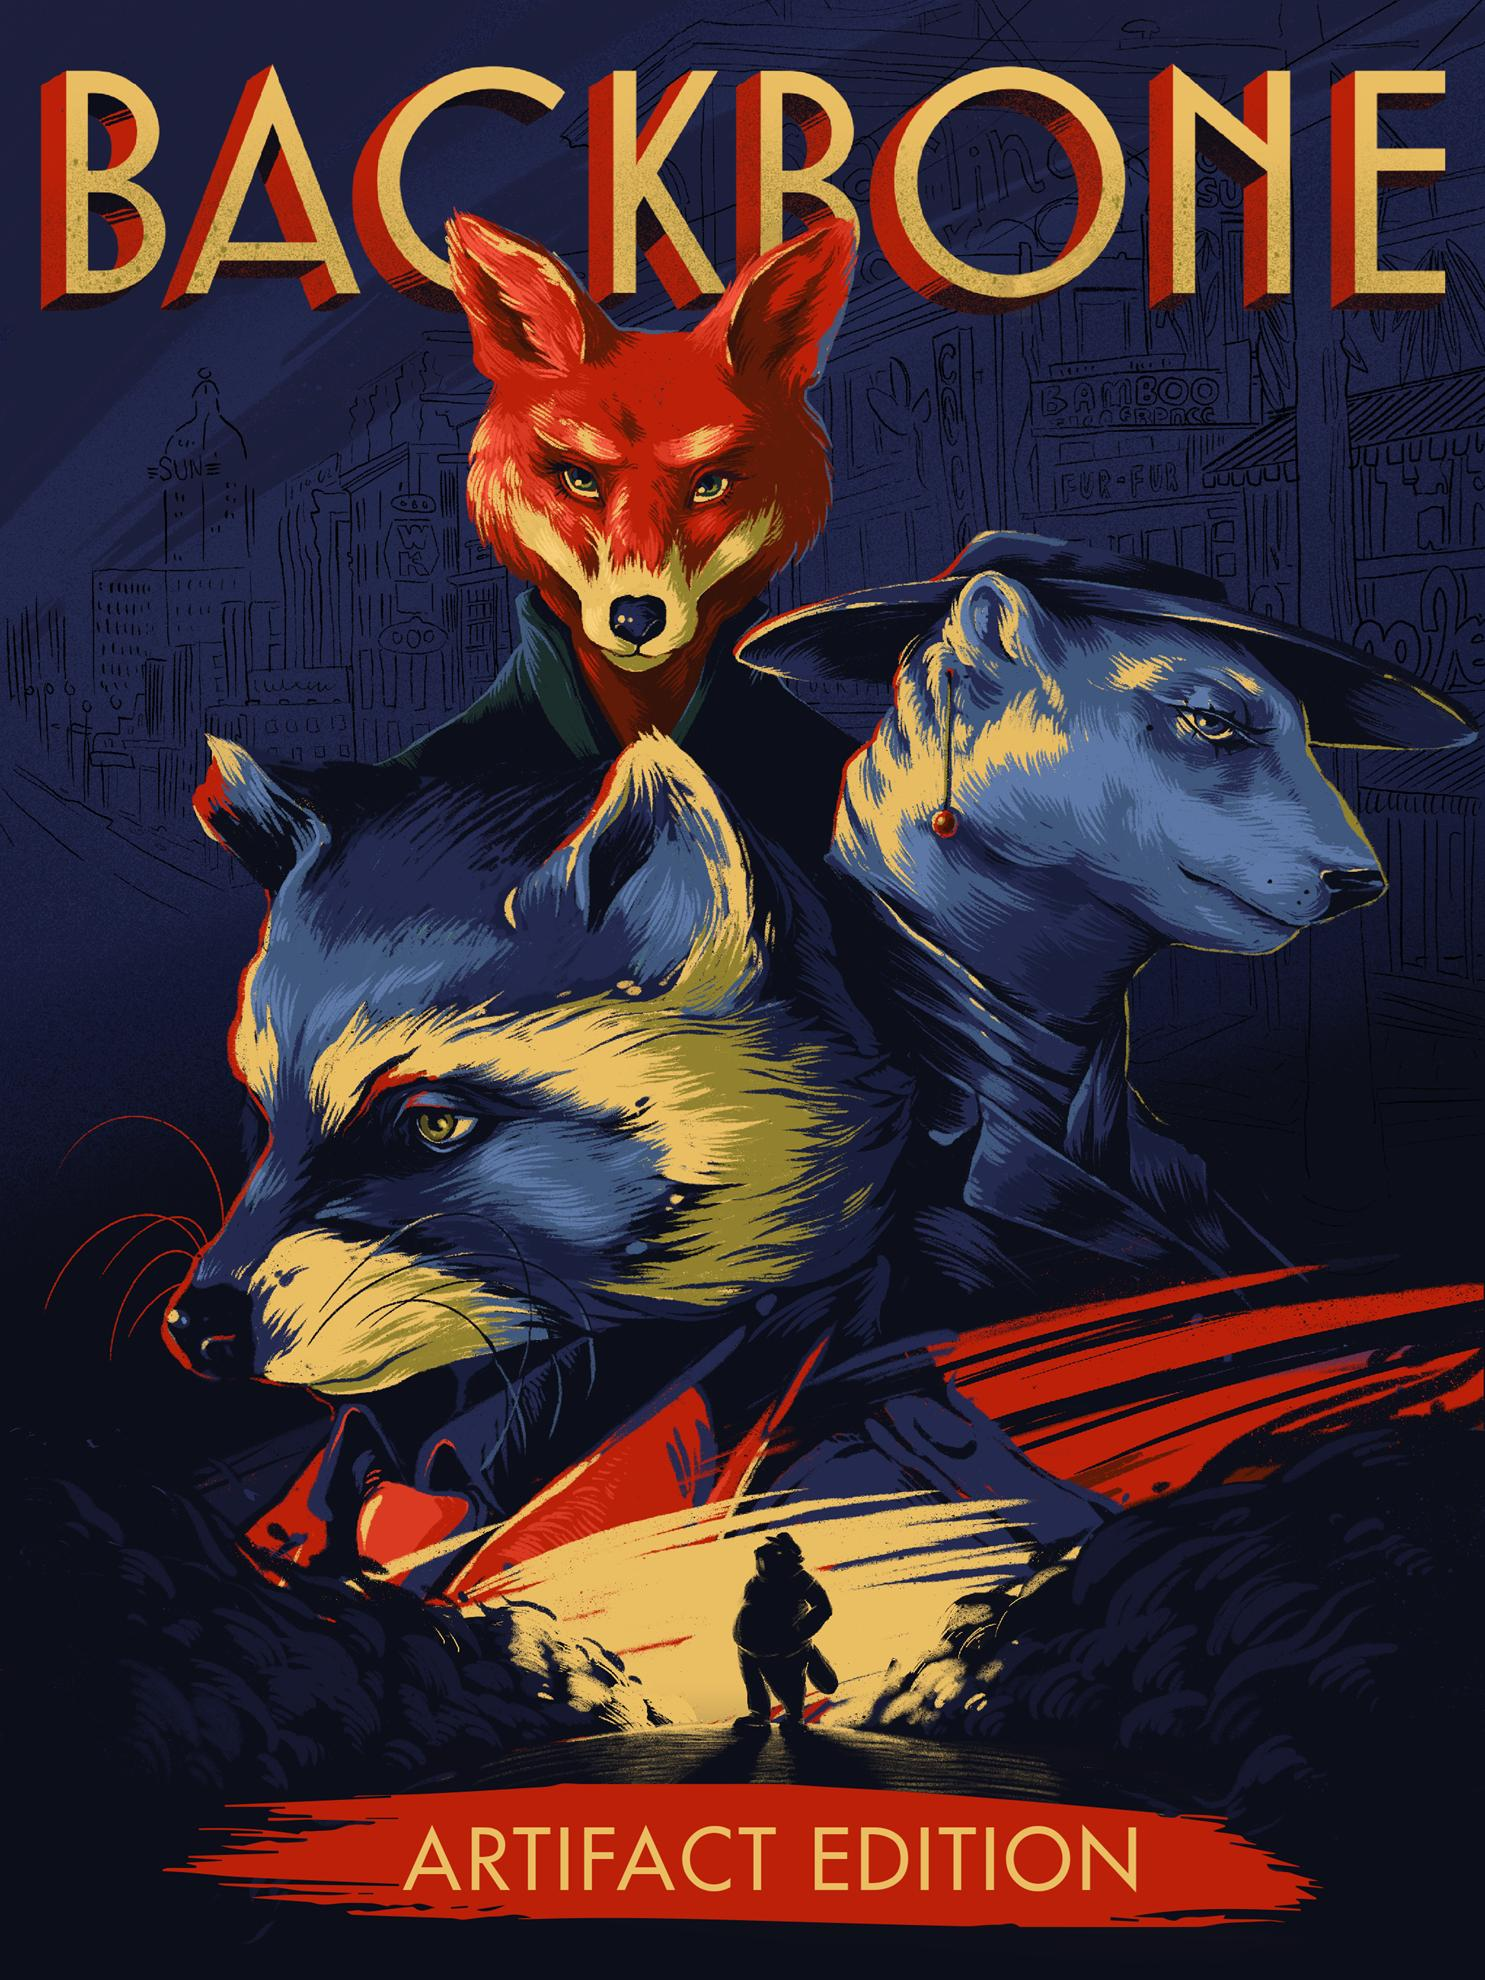 Backbone - The Artifact Edition | Middle East (1f4a8d49-bb26-4559-83e1-bbb855dd5a79)